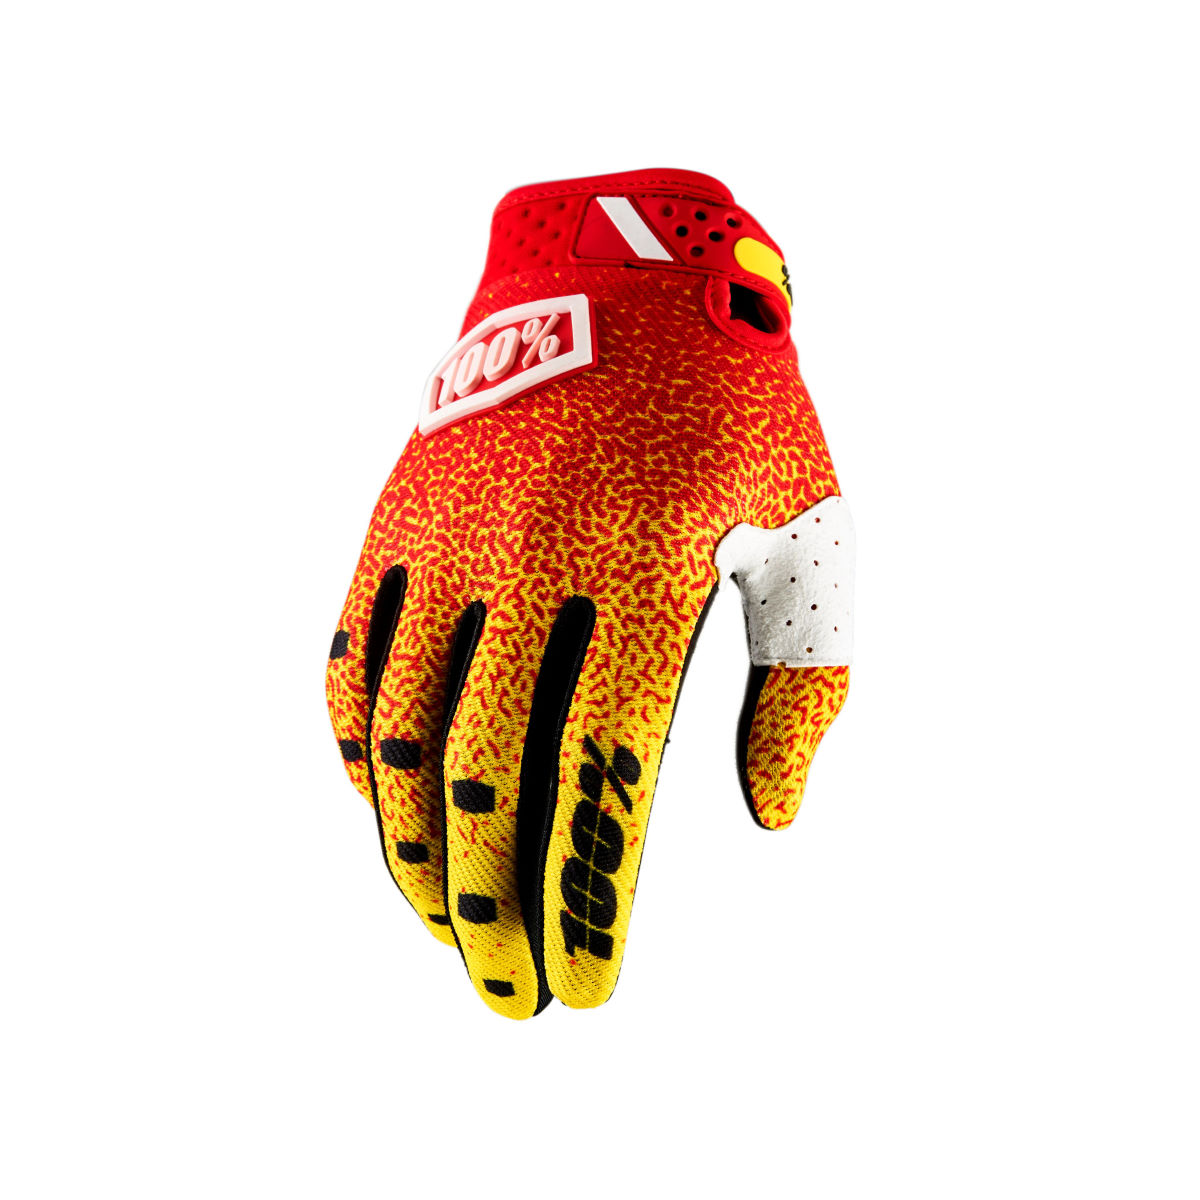 Gants 100% RideFit - XL Red - Yellow Gants